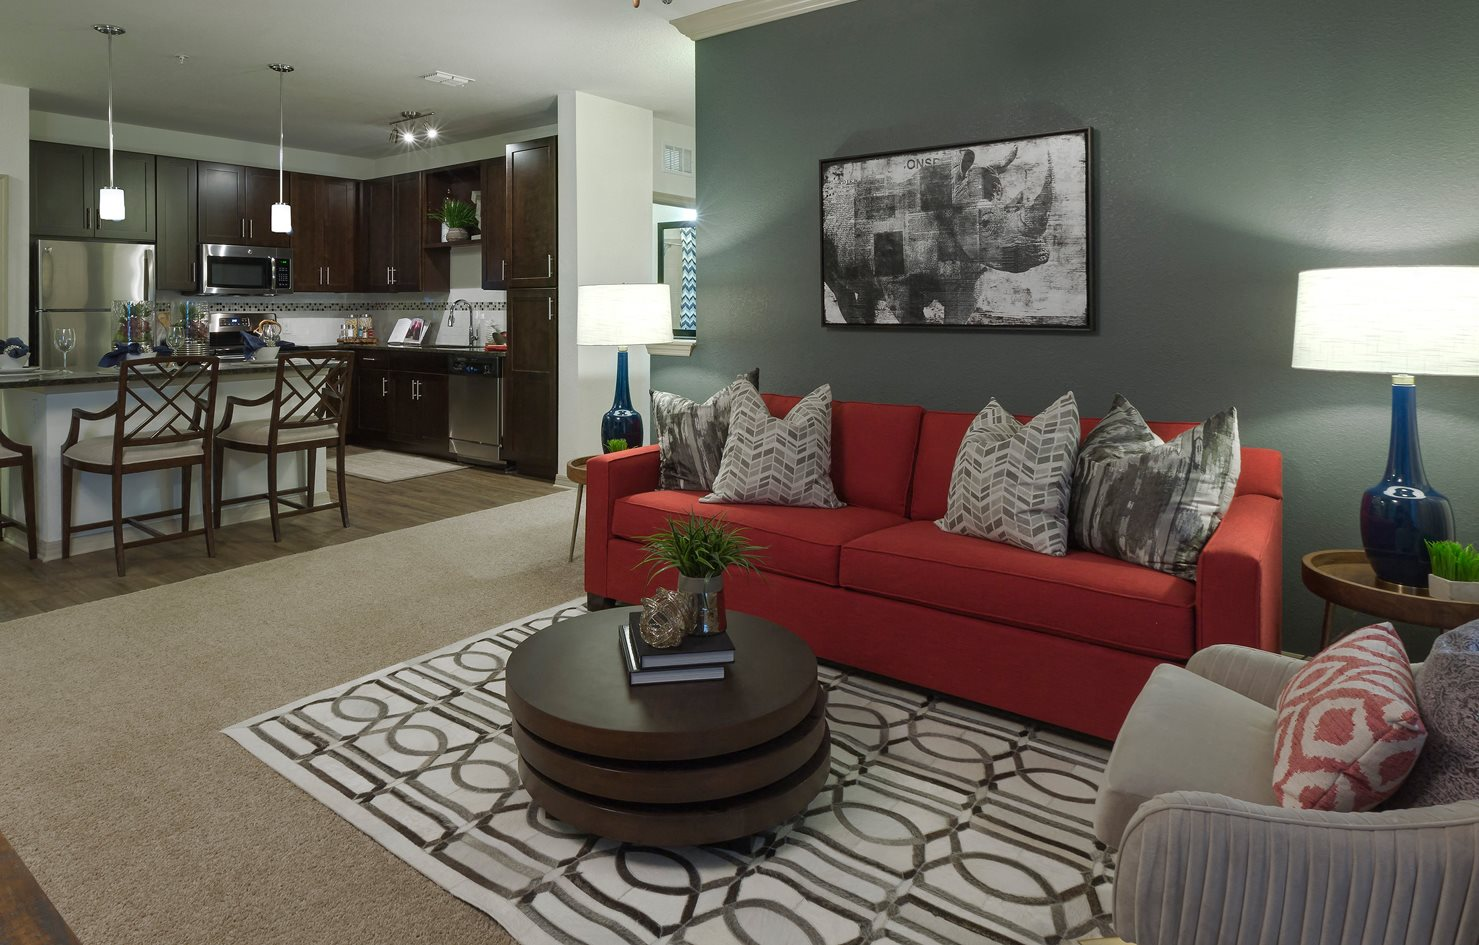 Living Room at Integra 360 Apartments in Winter Springs, FL